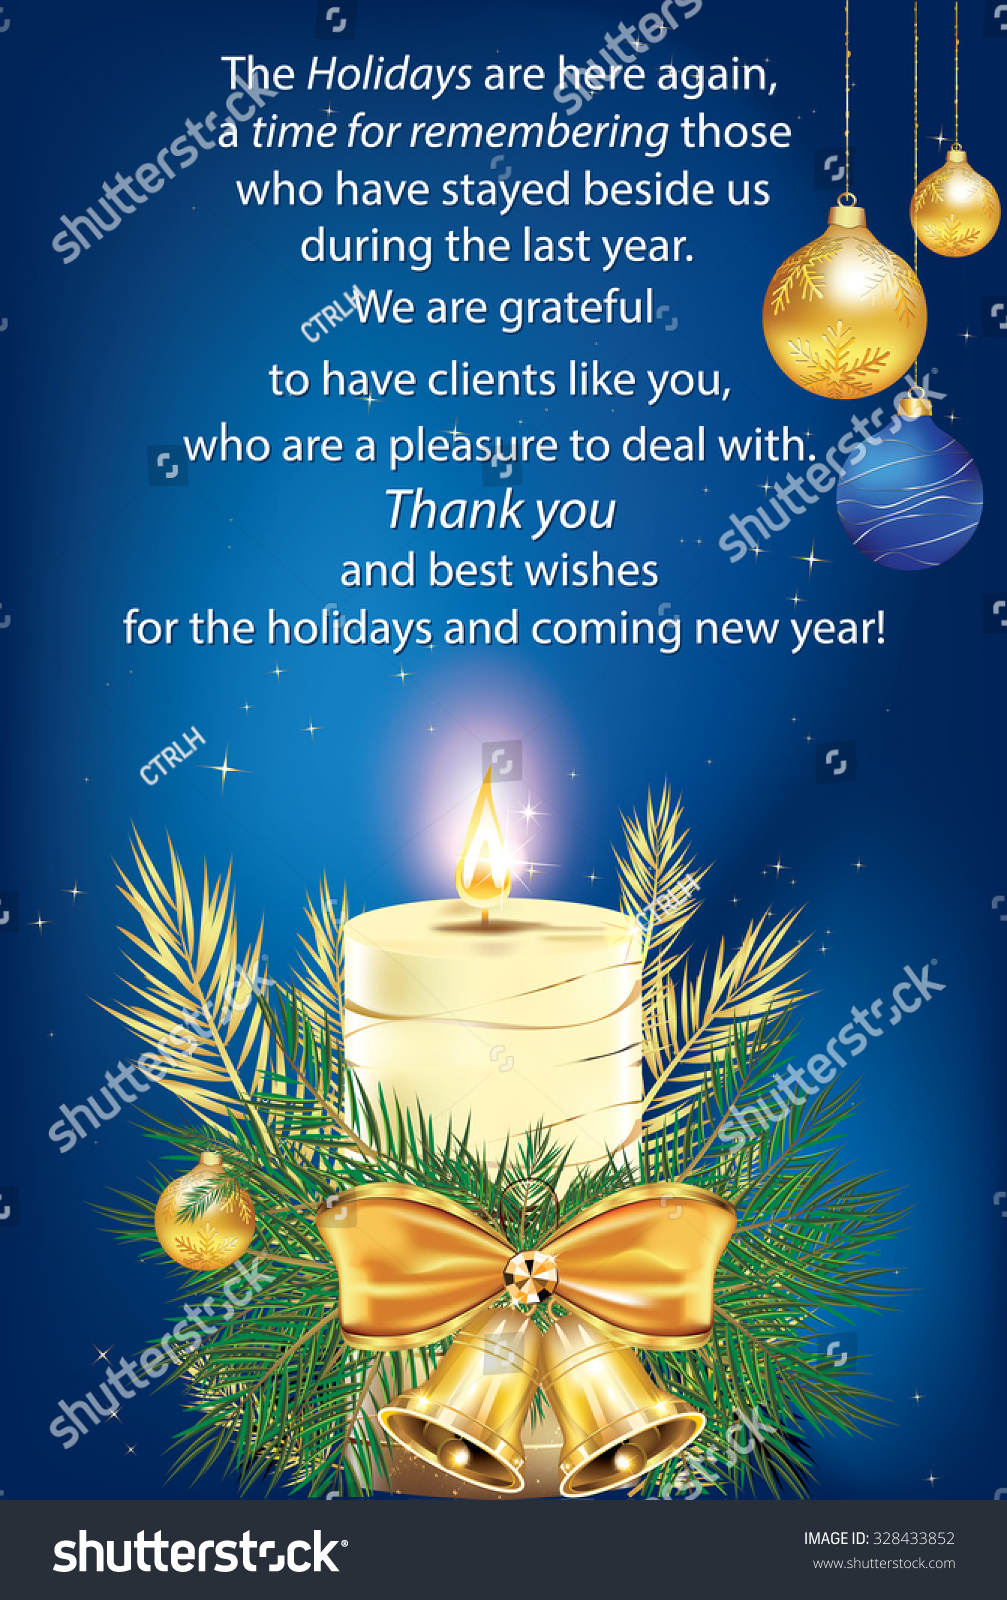 Thank you elegant business greeting card stock vector royalty free thank you elegant business greeting card for christmas for companies that want to thank their colourmoves